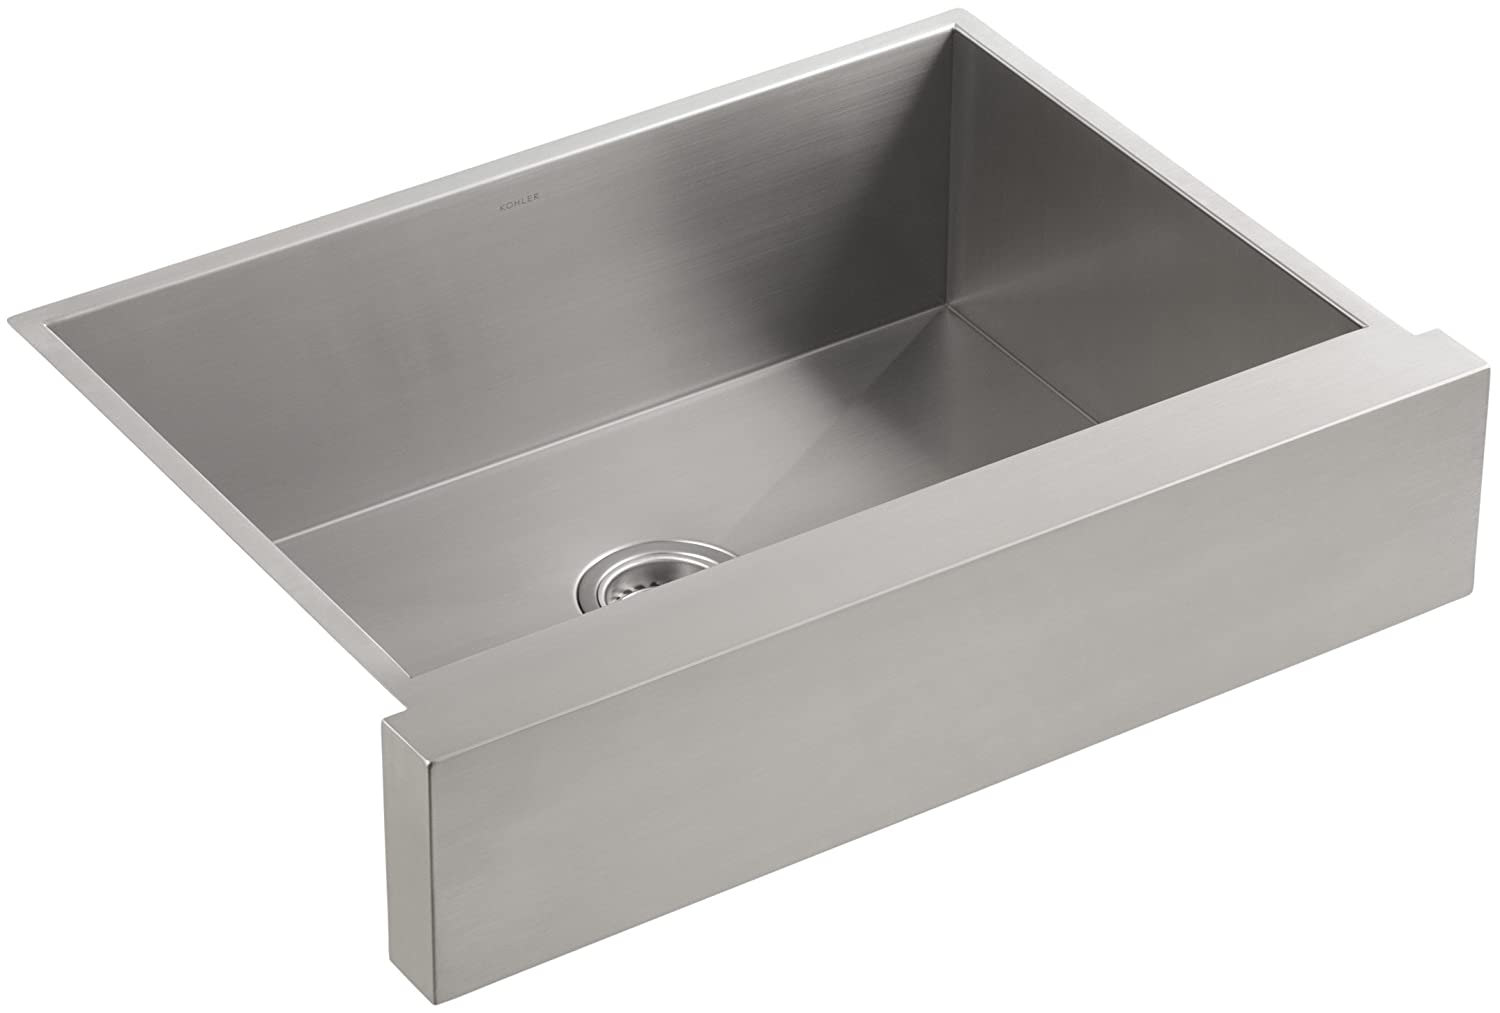 KOHLER Vault 30 Single Bowl 18-Gauge Stainless Steel Farmhouse Apron Front Undermount Kitchen Sink, K-3936-NA